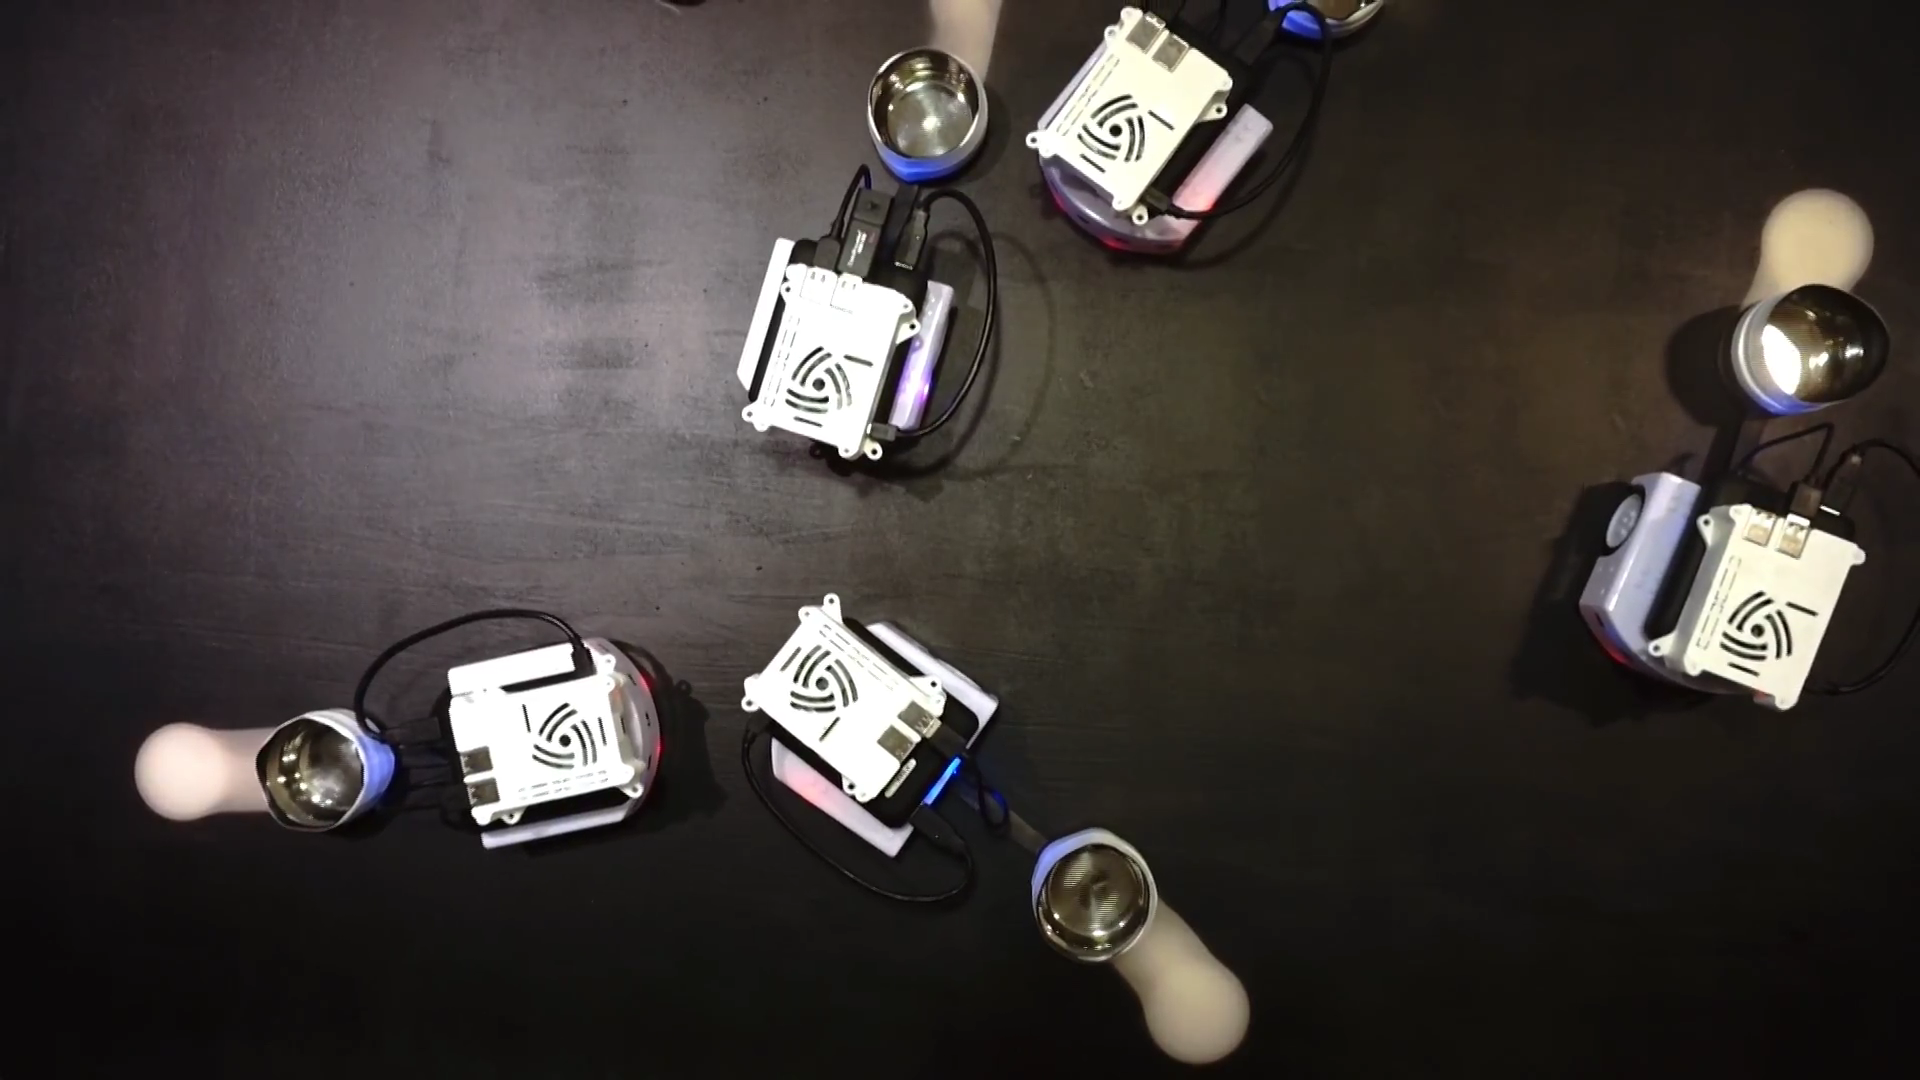 You are currently viewing Pheromone Performance with Swarm Robotics